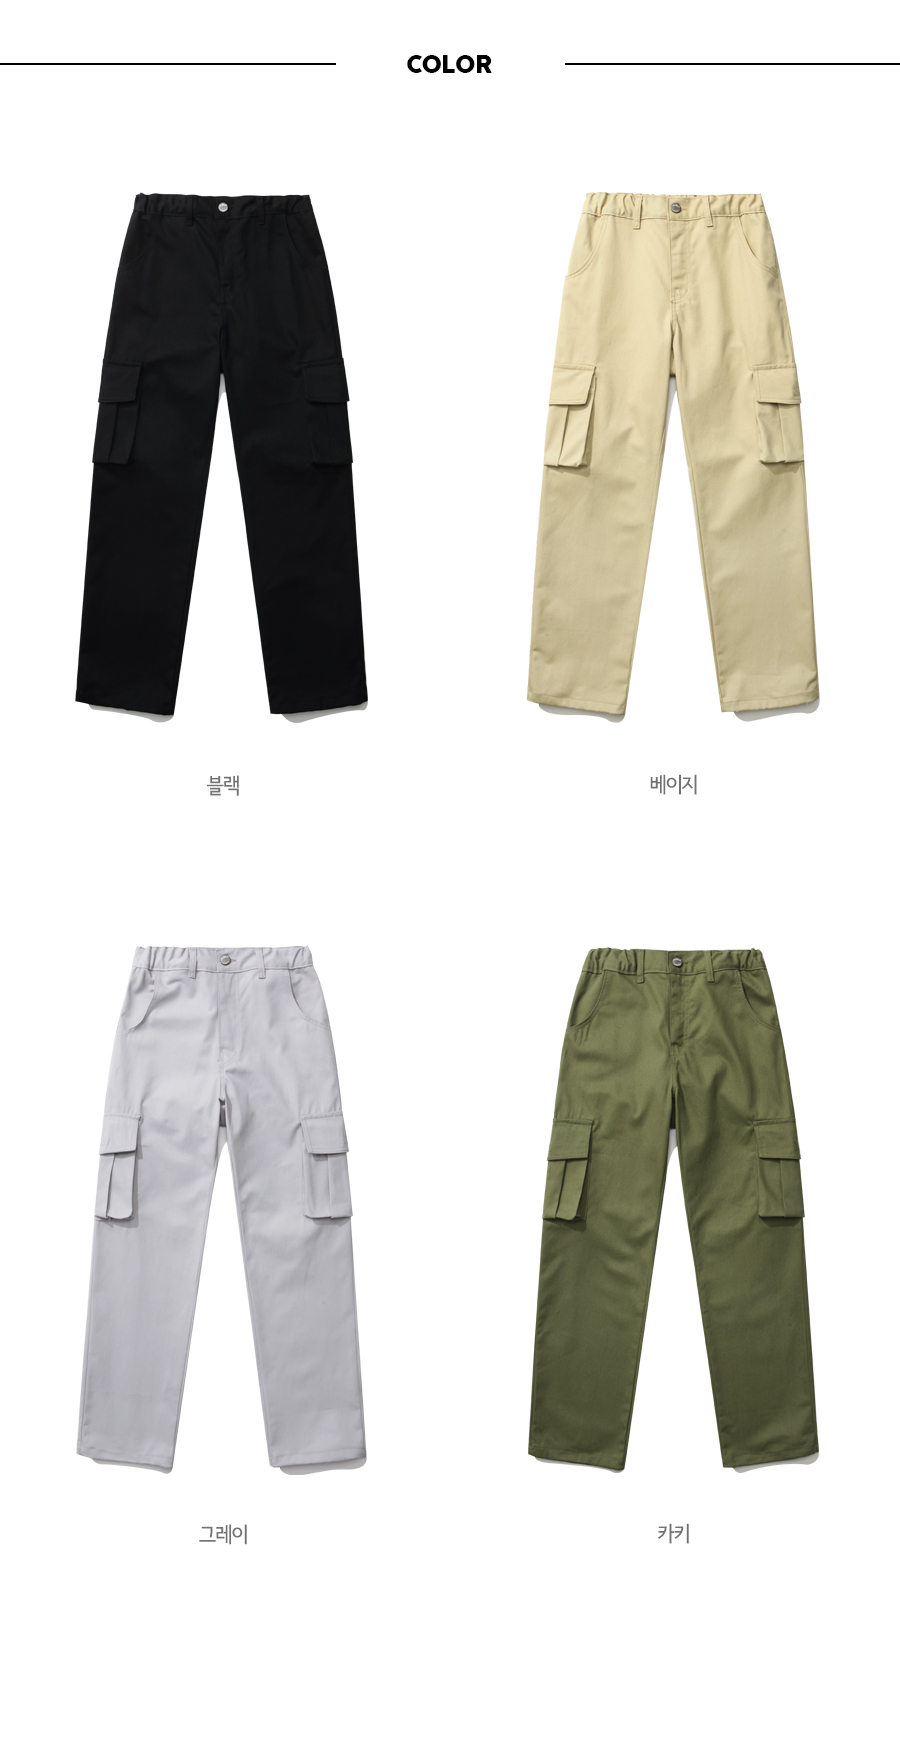 20181017_youth_wide_cargo_pants_color_yh.jpg